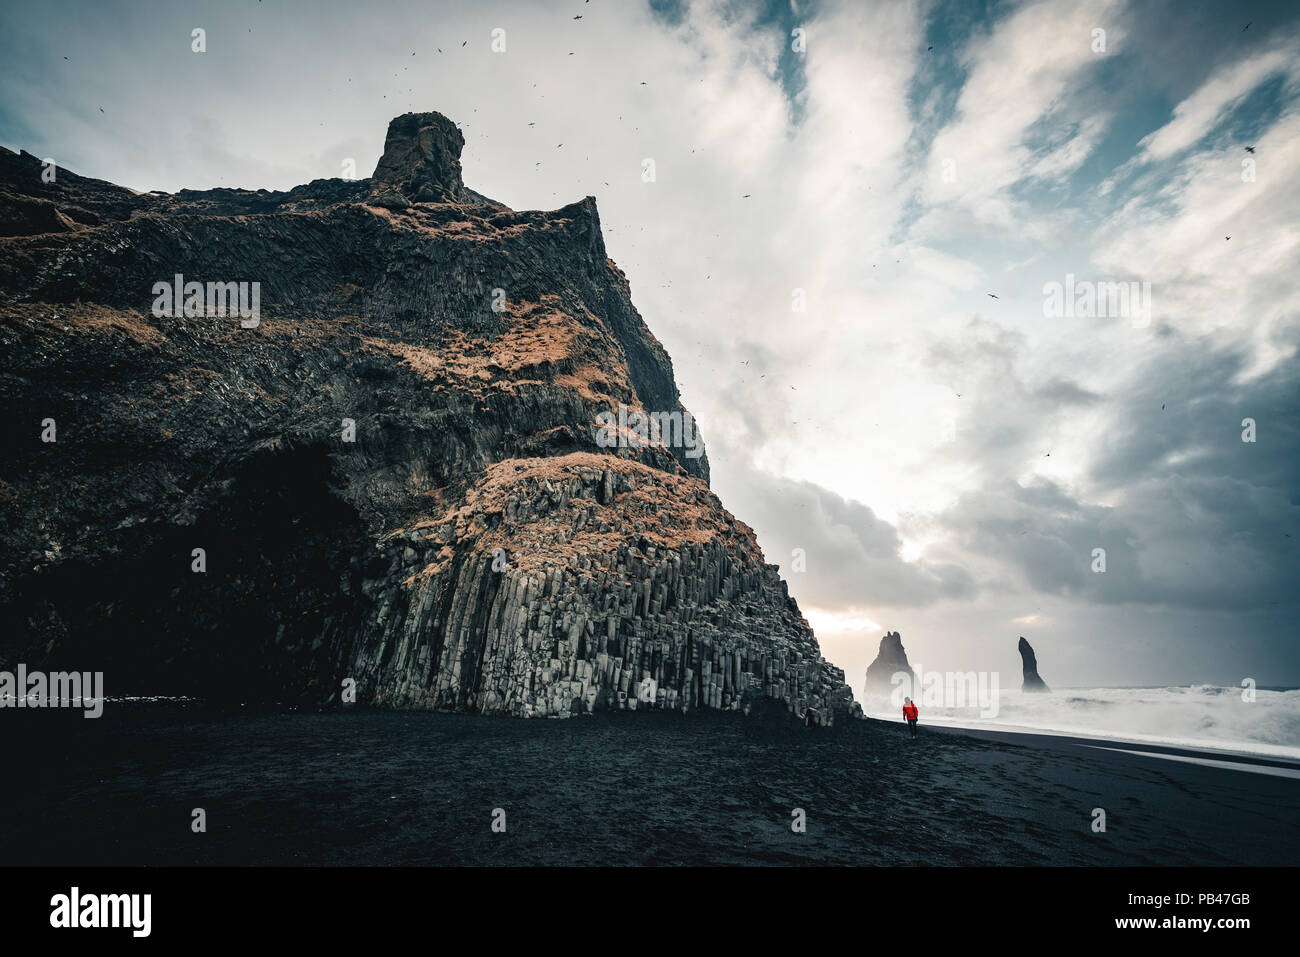 The black sand beach of Reynisfjara and the mount Reynisfjall, Iceland. Windy Morning. Ocean Waves. Colorful Sky. Morning Sunset. - Stock Image